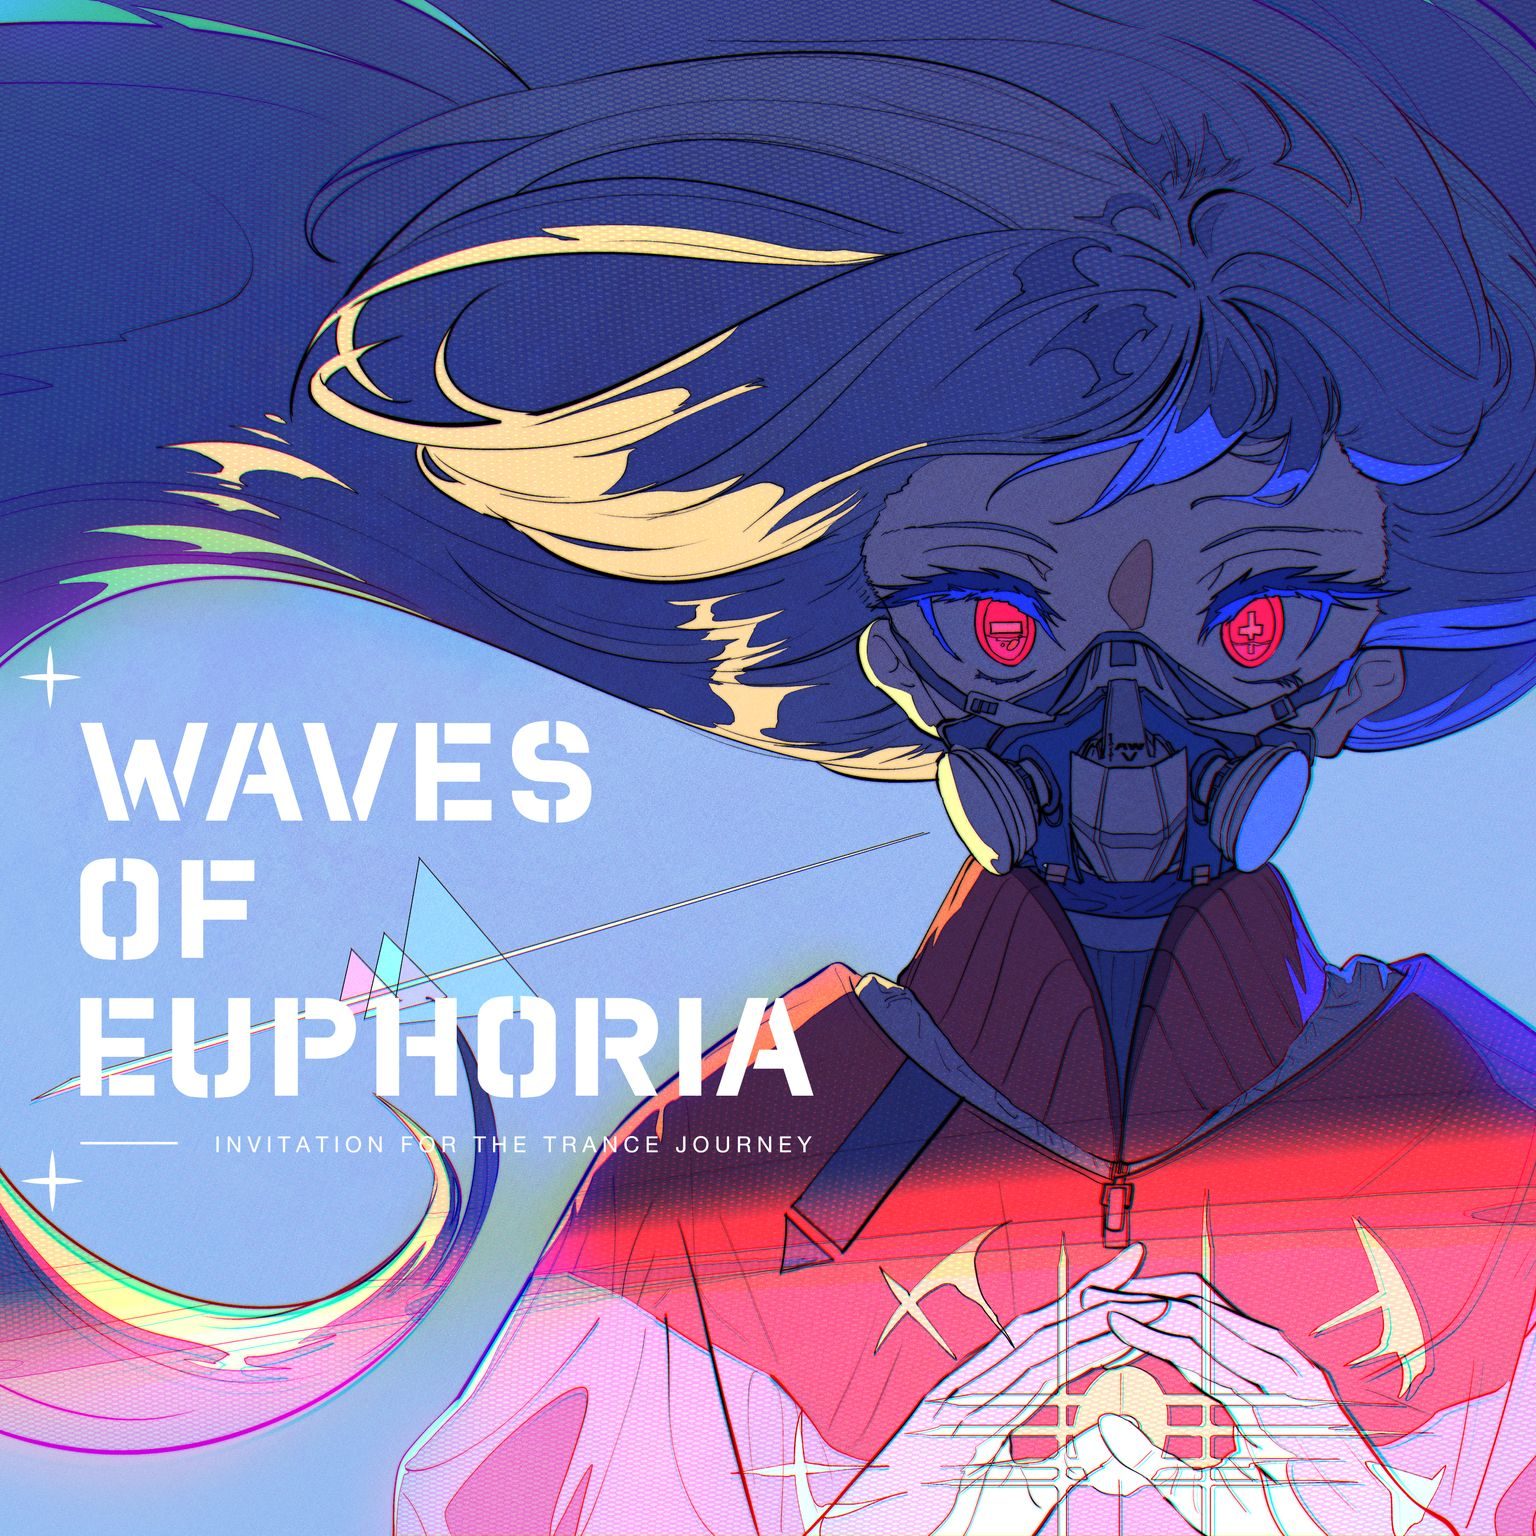 WAVES OF EUPHORIA - INVITATION FOR THE TRANCE JOURNEY